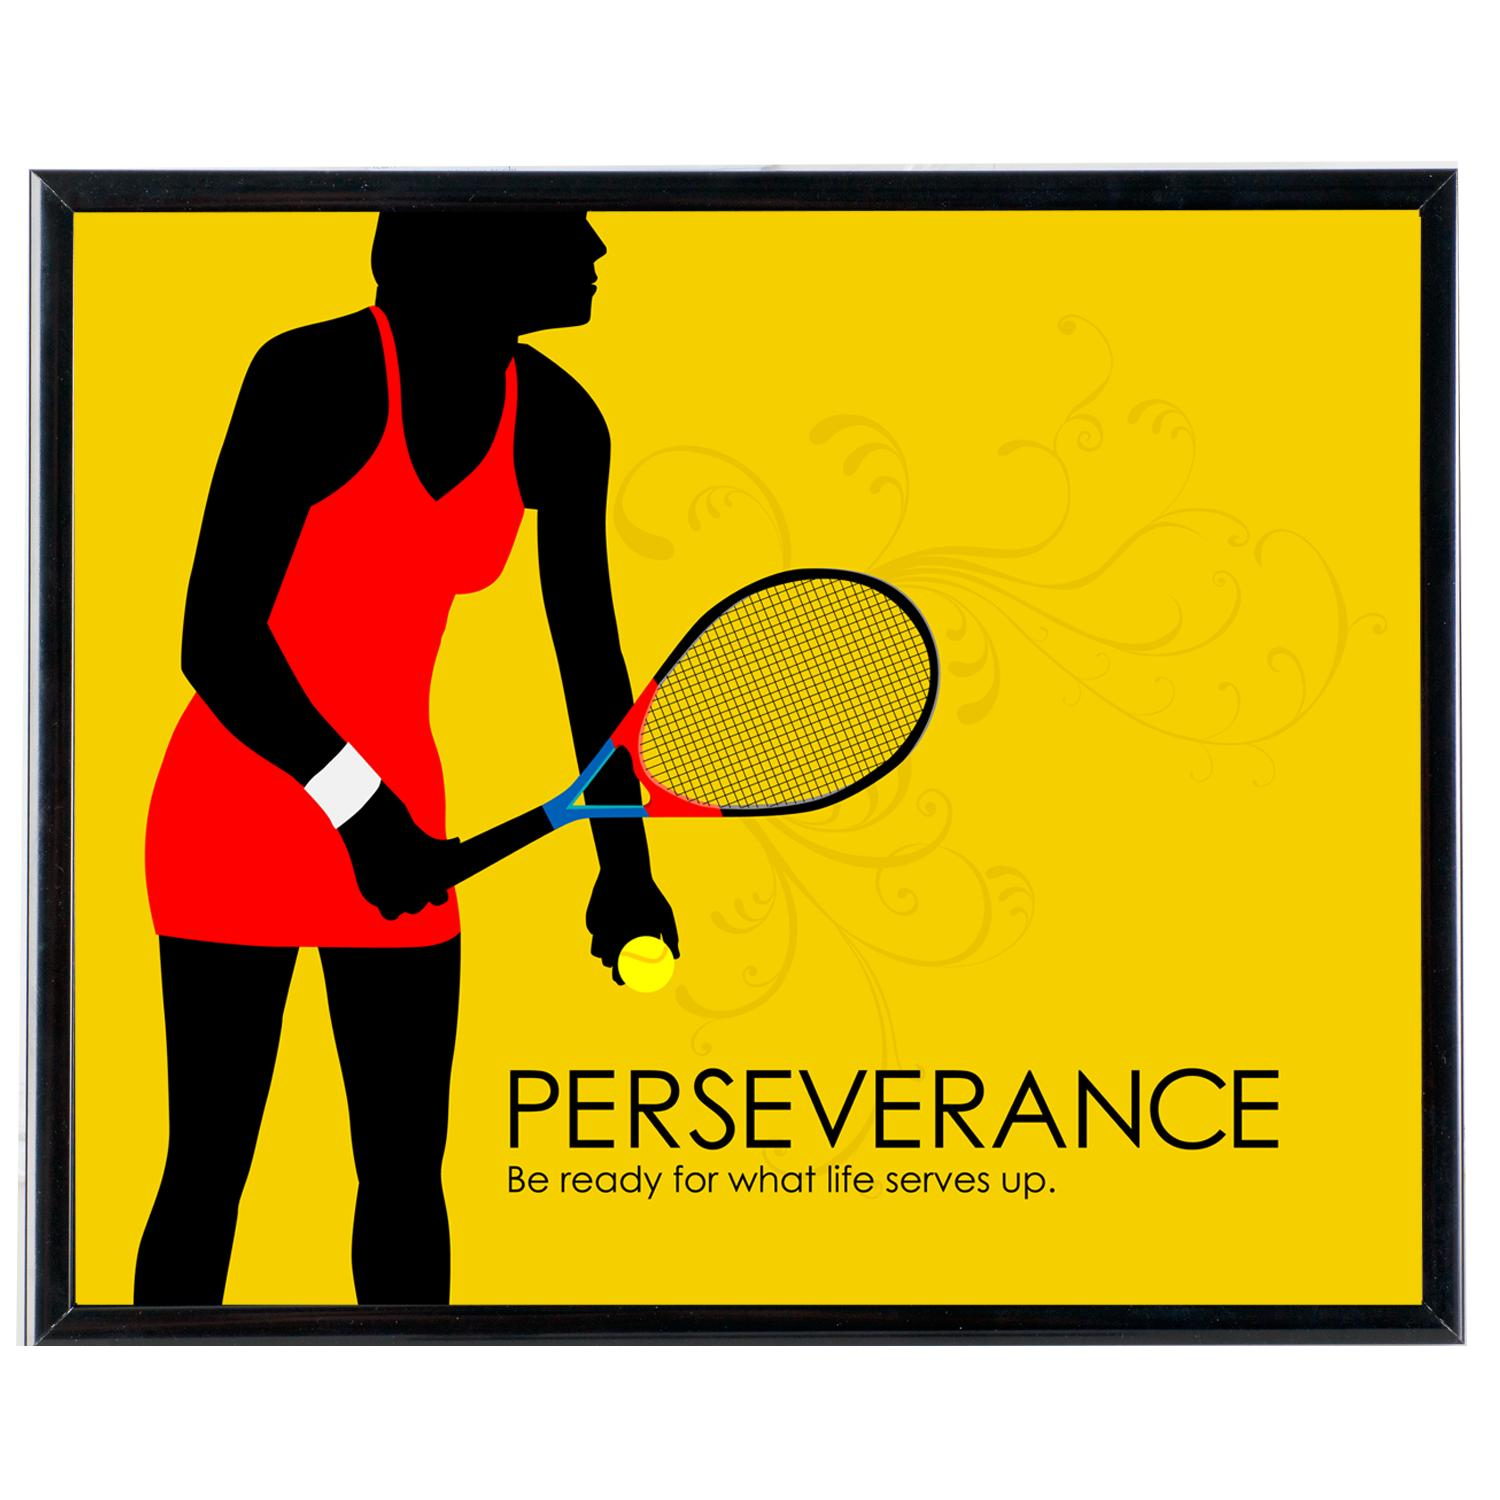 Persistence Motivational Quotes: Perseverance Quotes For Athletes Football. QuotesGram